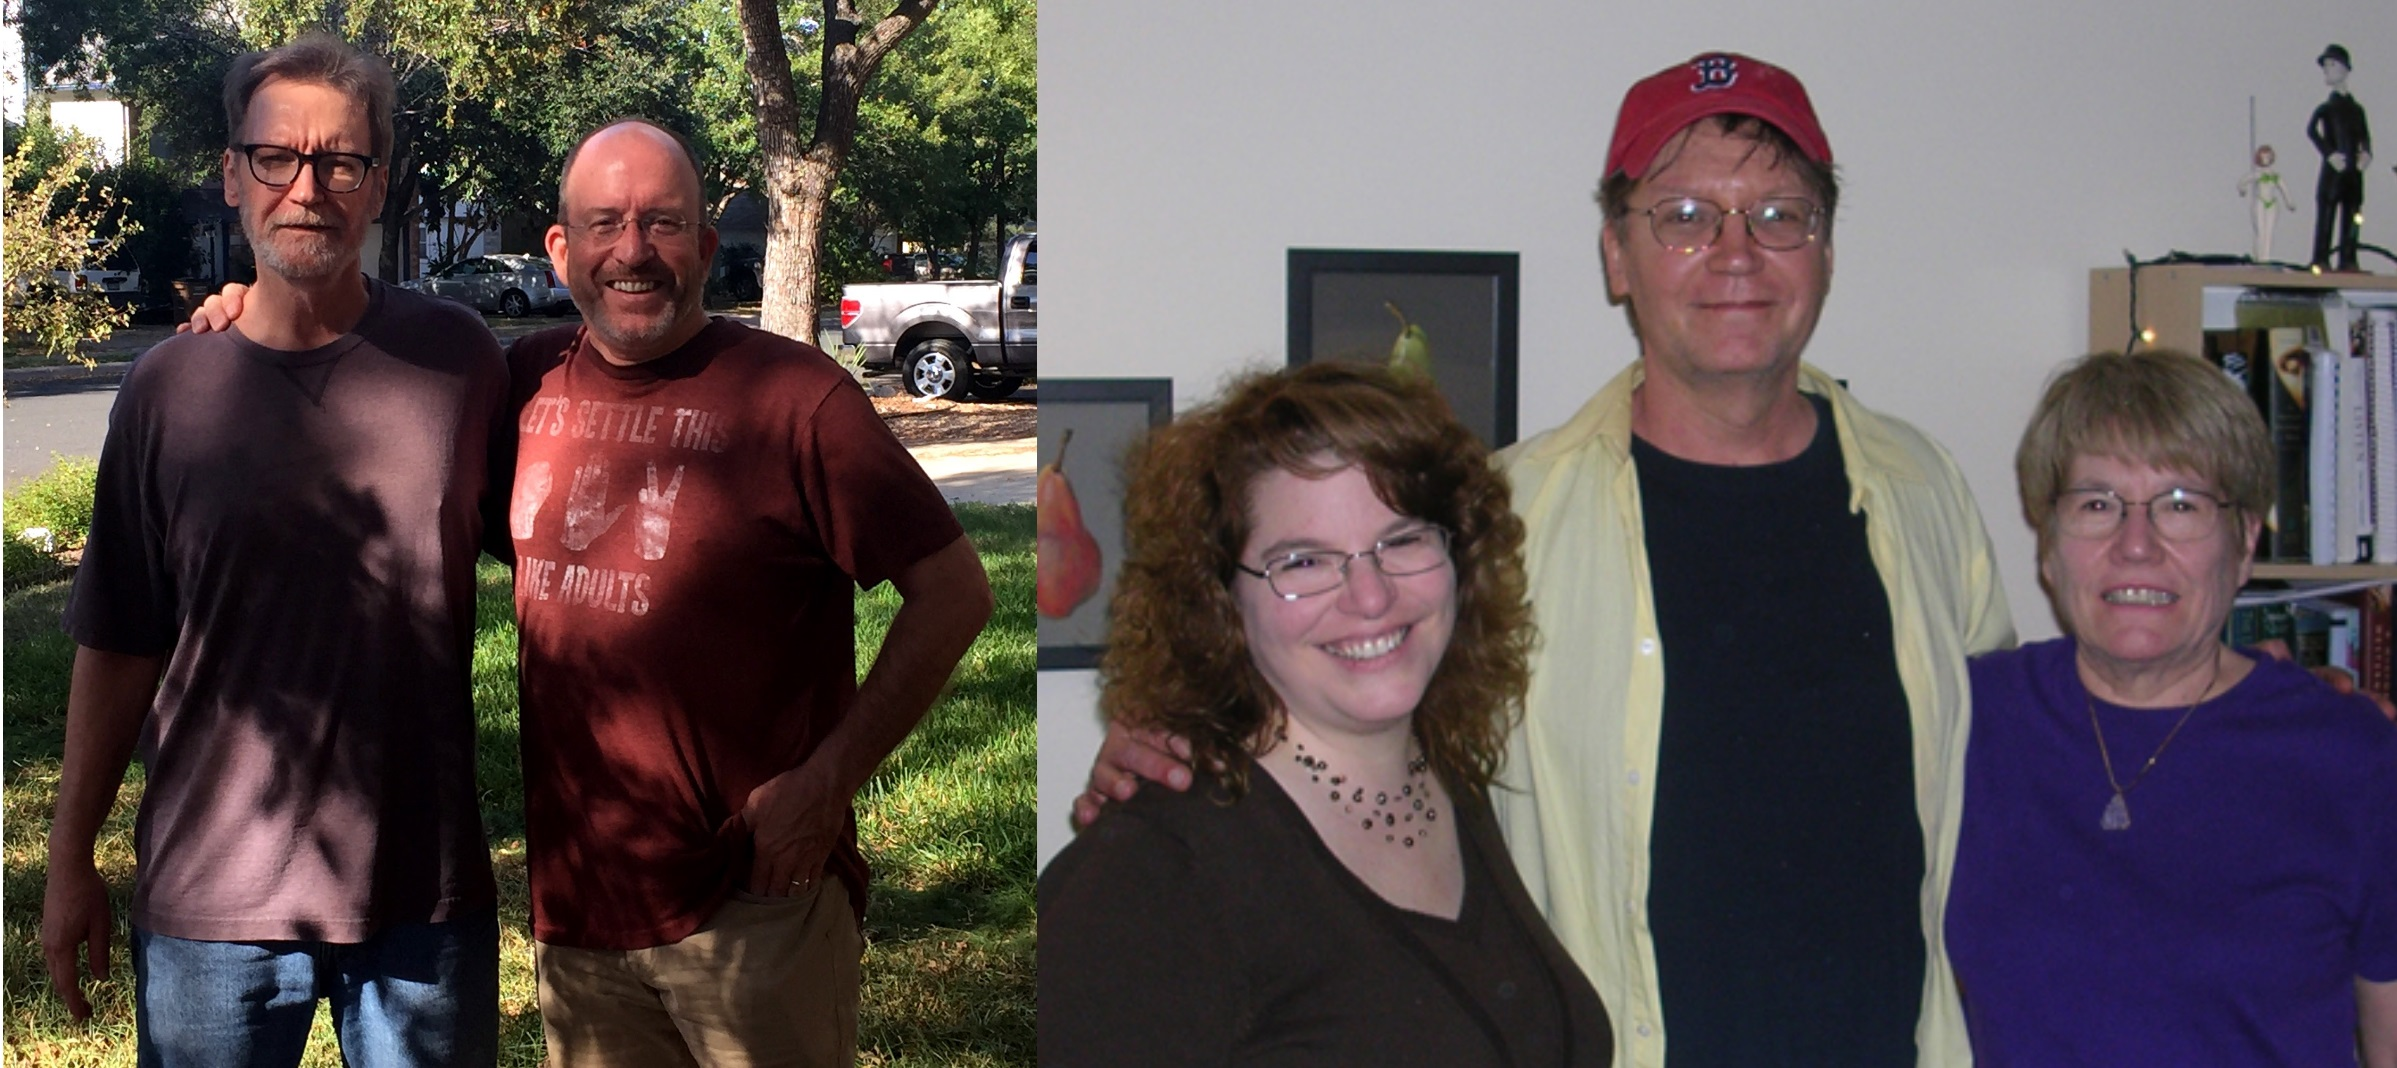 Gordon and I in Austin a couple of years ago (left) and Liz/Lizardmom and me in Boston (2008).